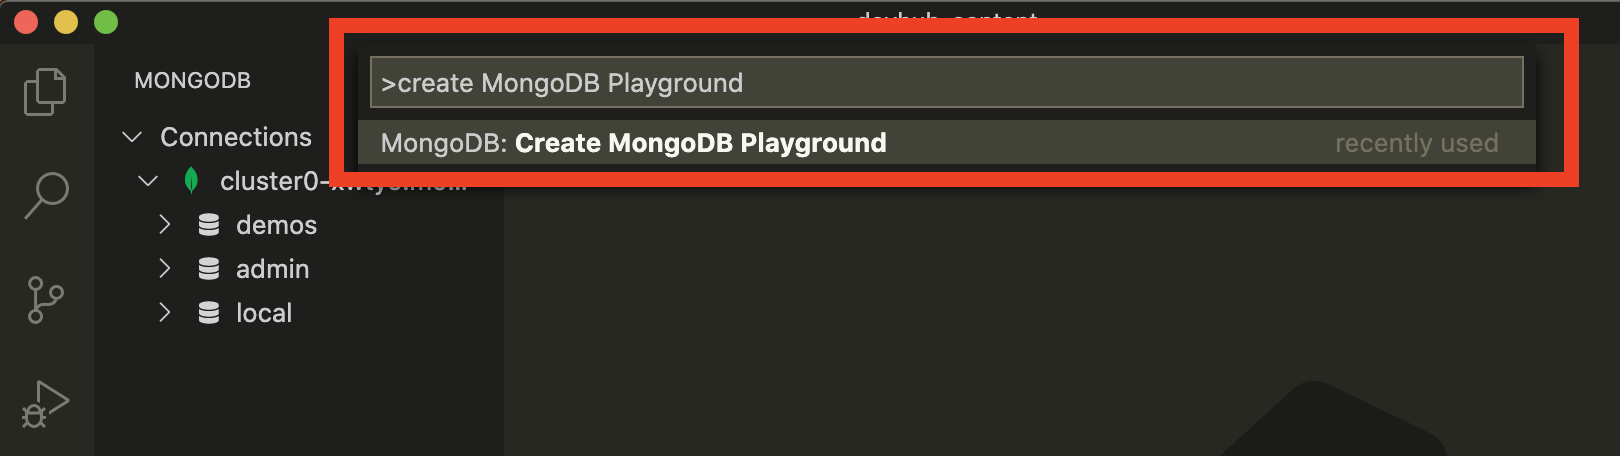 Screenshot showing the 'Connect to MongoDB' page within the MongoDB Visual Studio Code plugin.